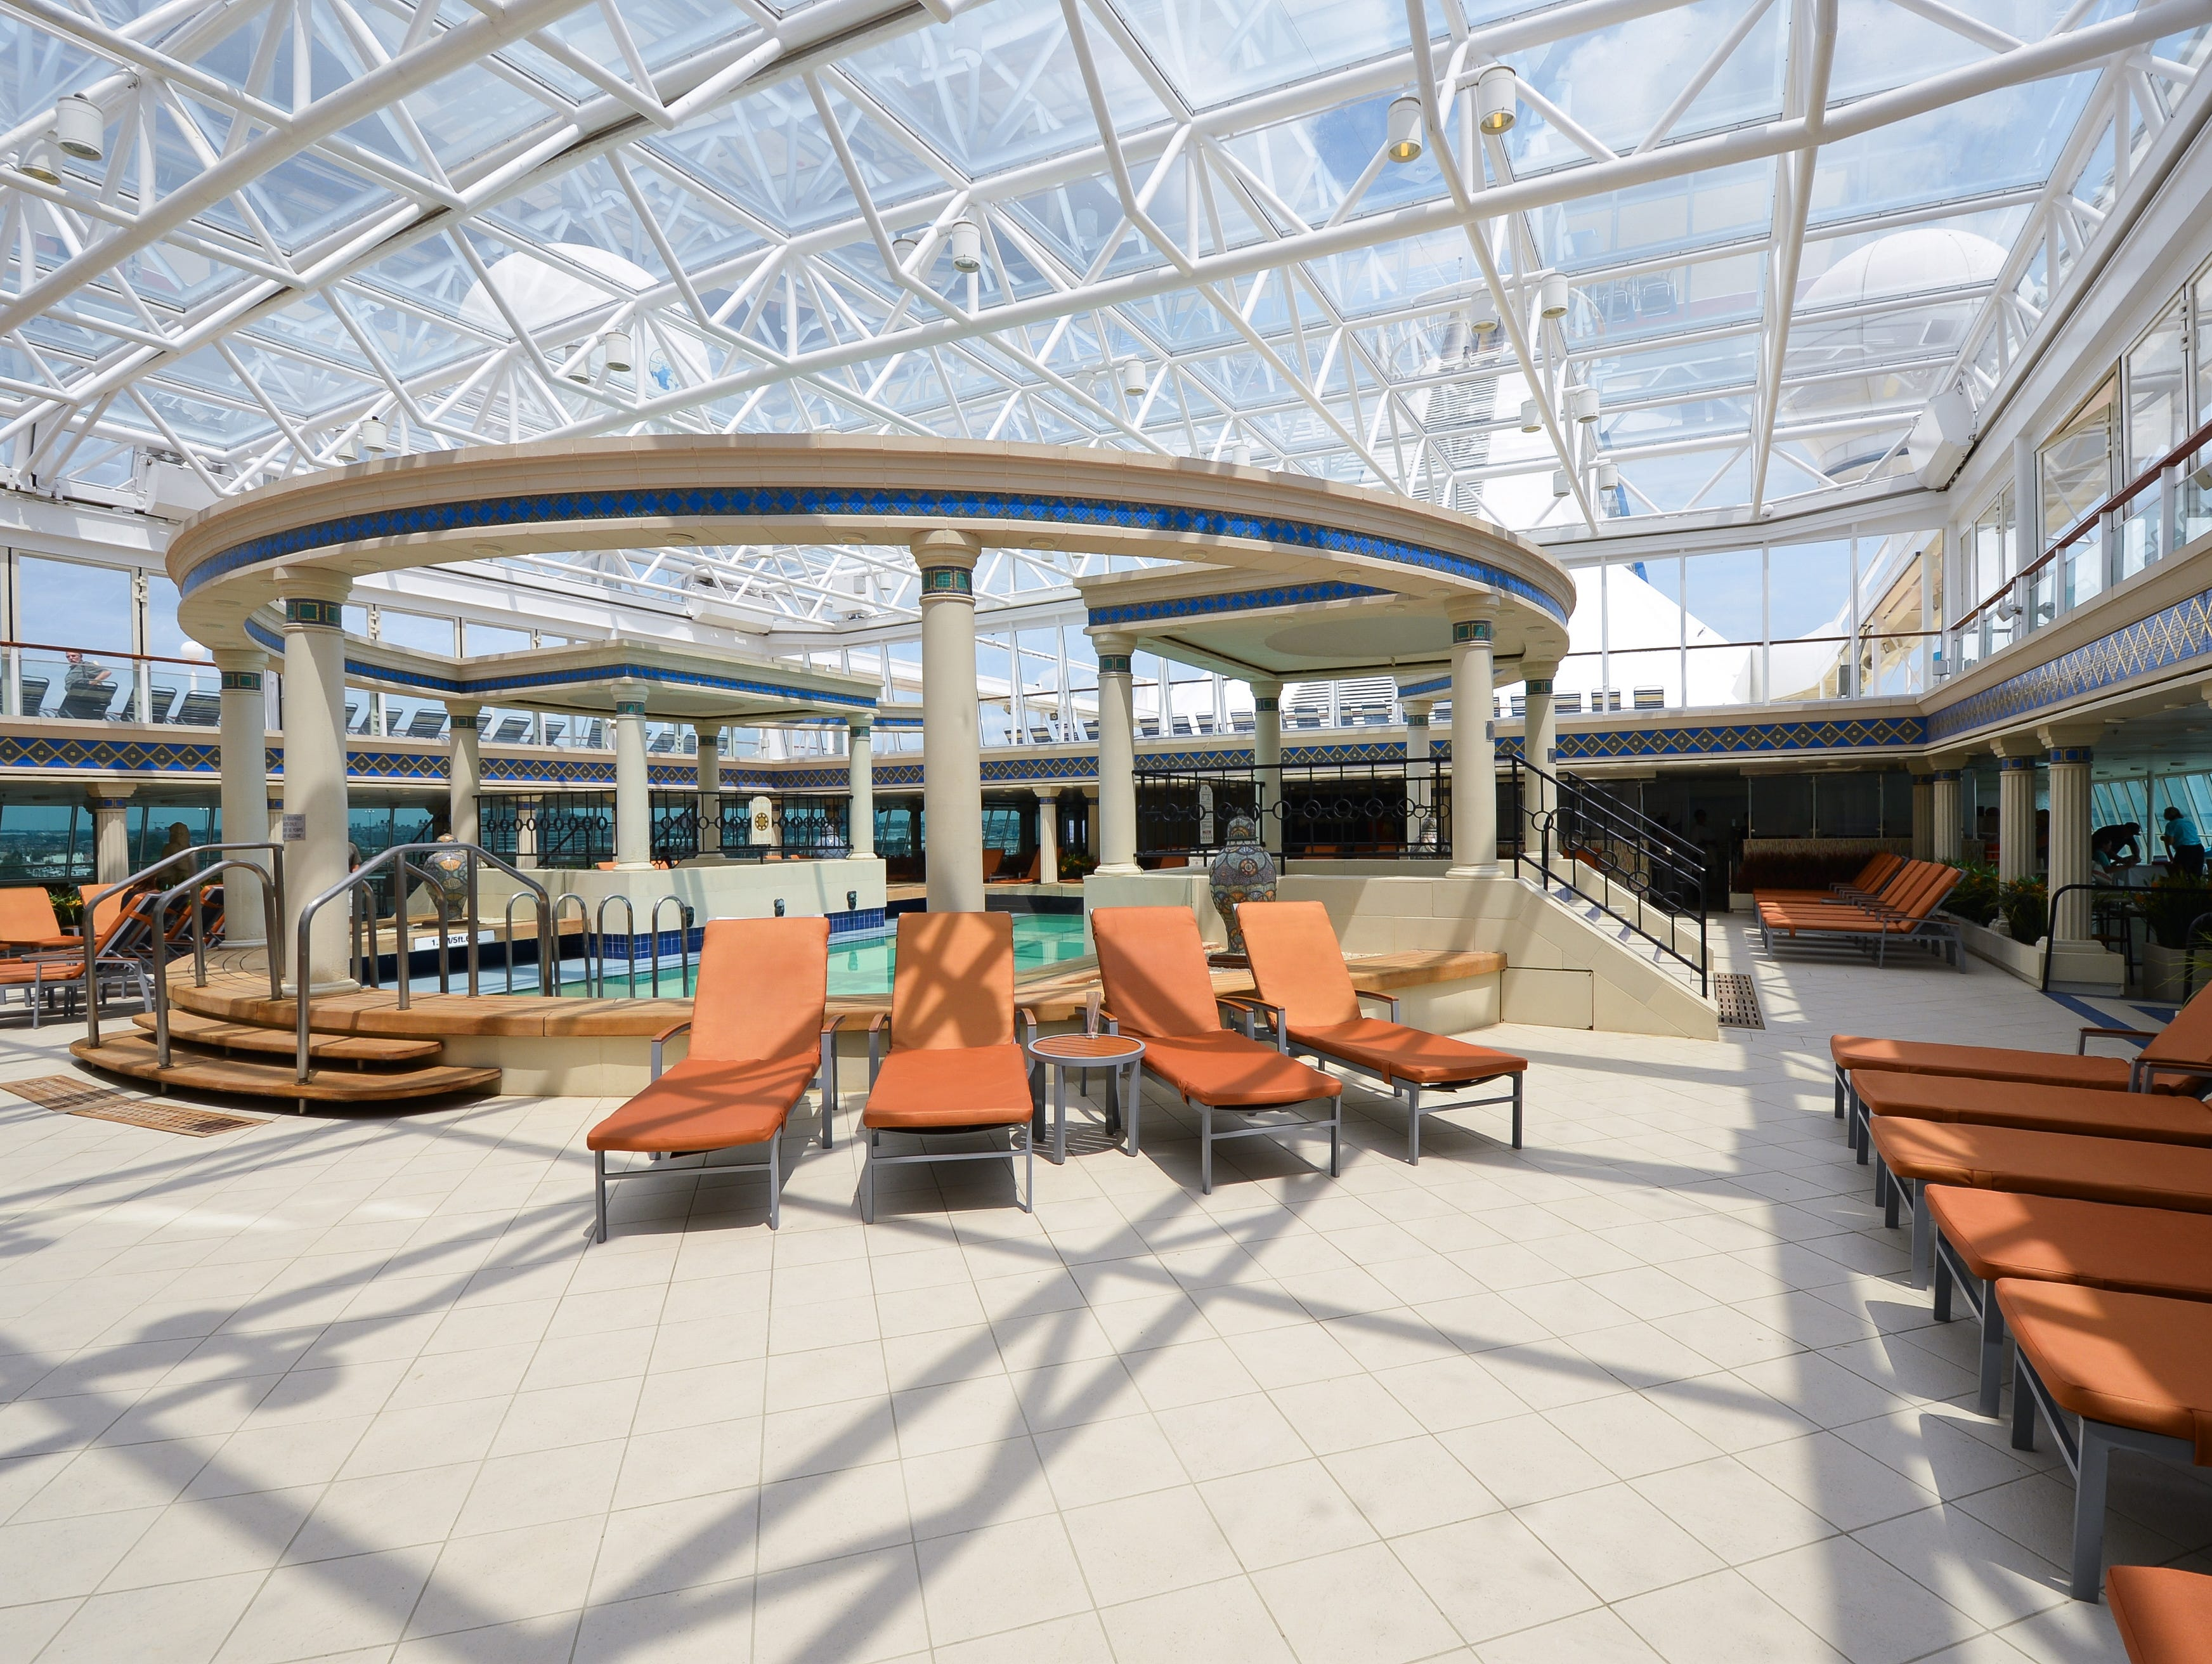 In addition to the main pool, Grandeur of the Seas has a second pool in an indoor/outdoor area called the Solarium.